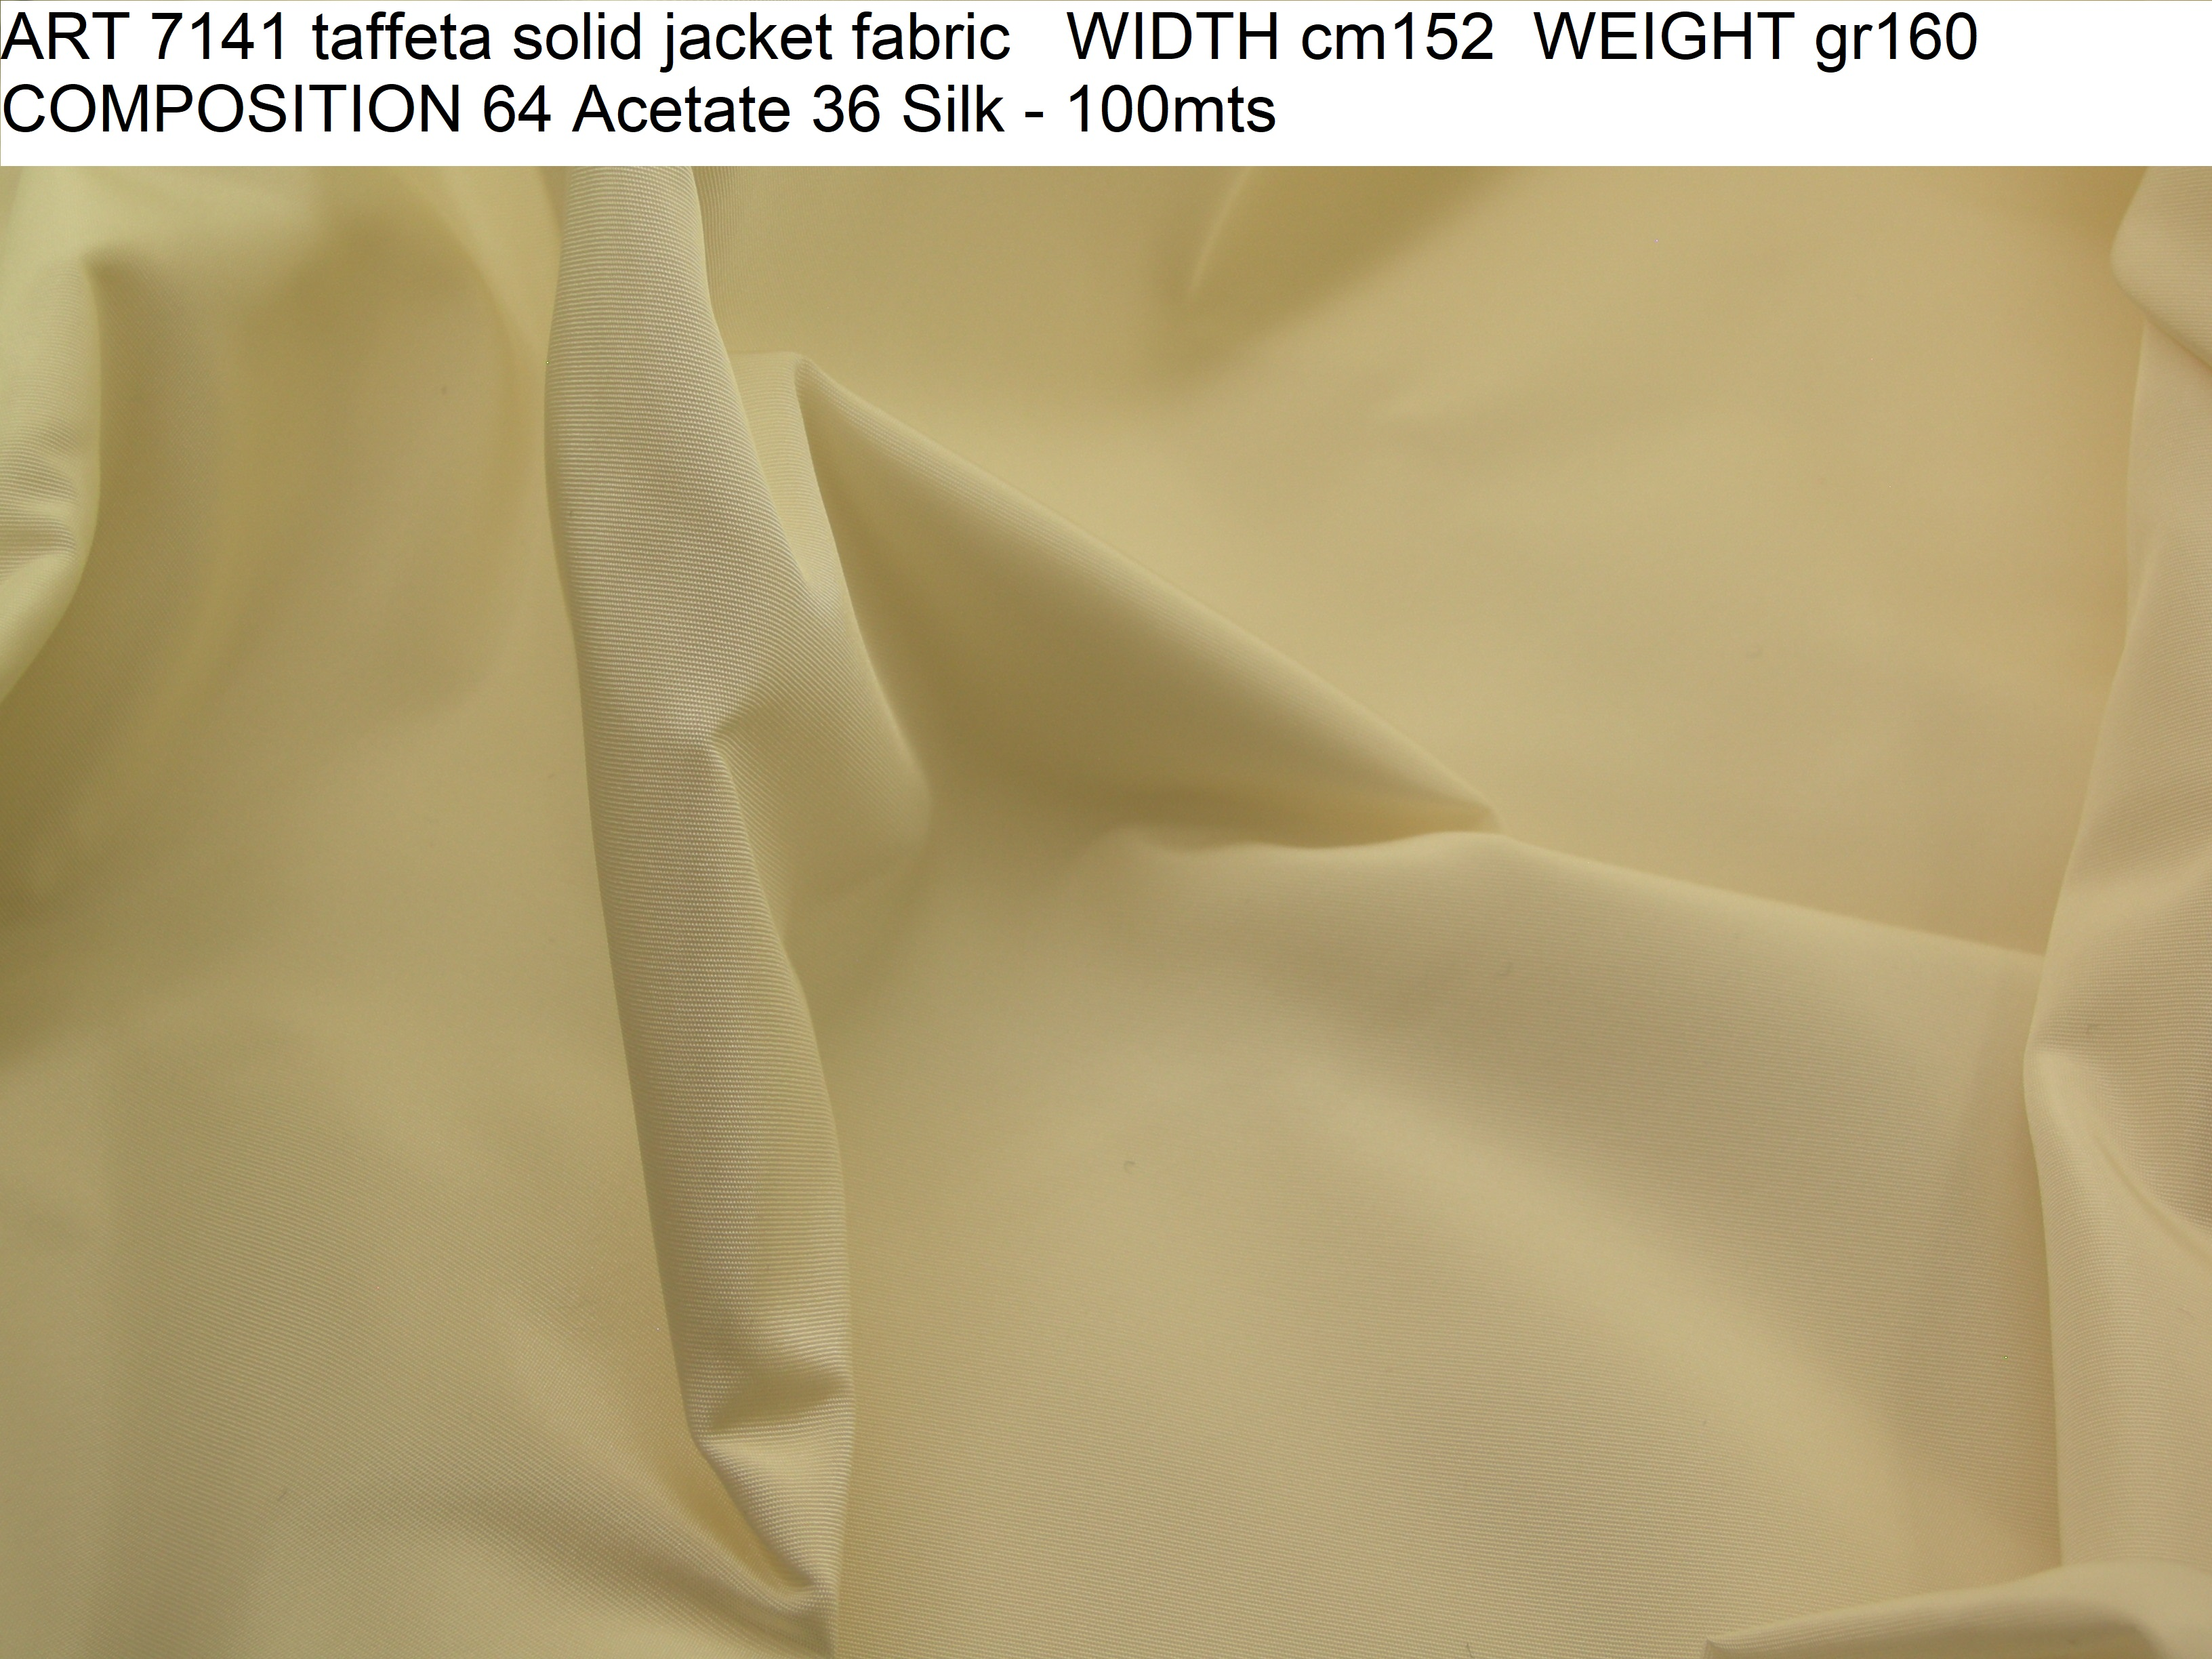 ART 7141 taffeta solid jacket fabric WIDTH cm152 WEIGHT gr160 COMPOSITION 64 Acetate 36 Silk - 100mts